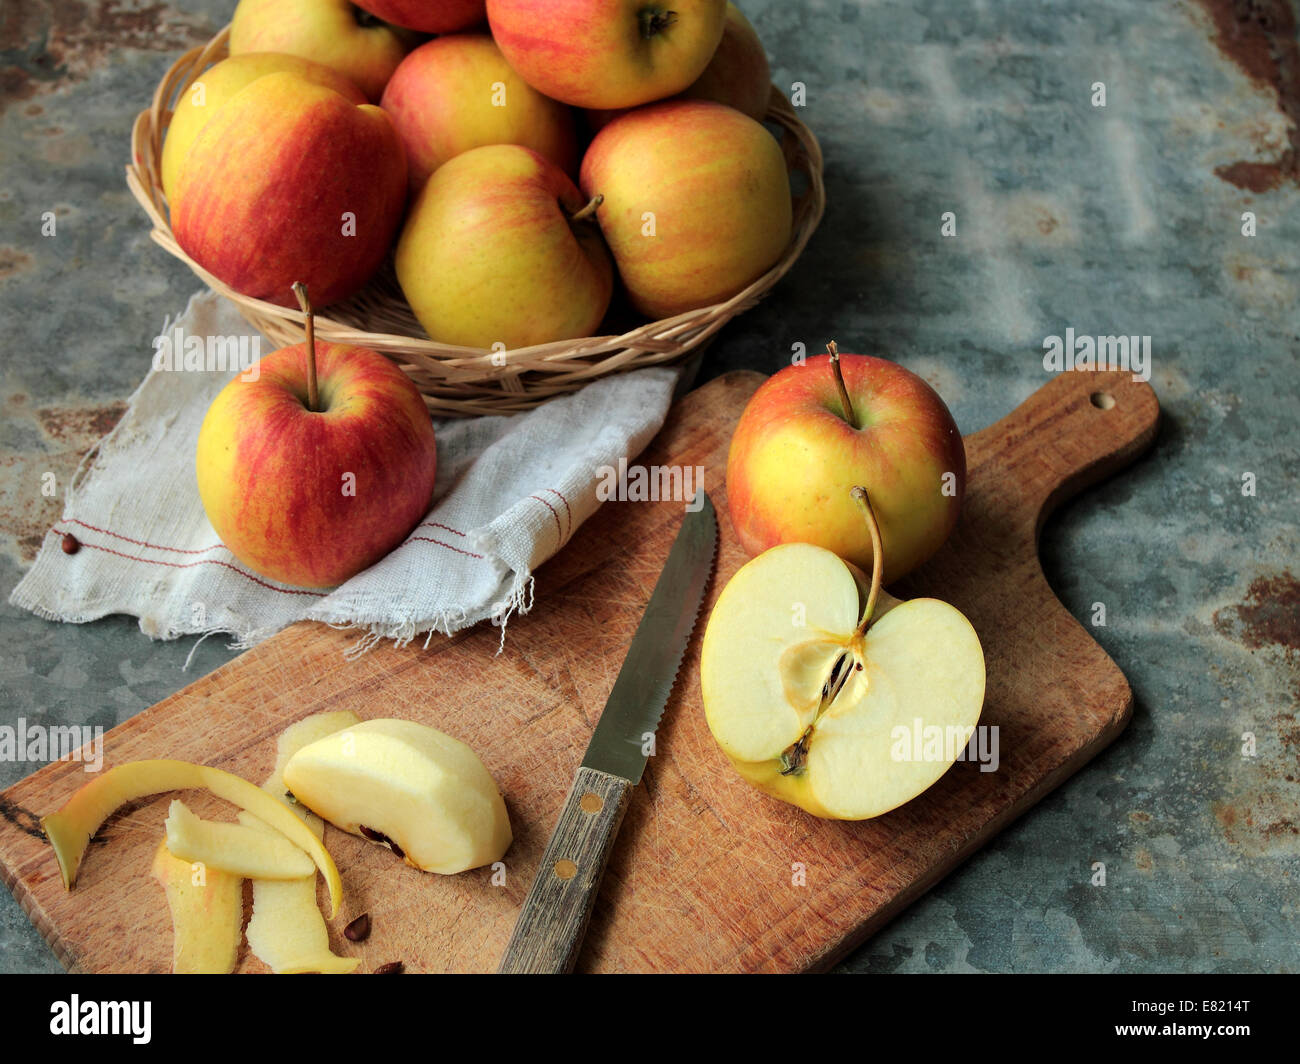 Red apples on cutting board in the kitchen - Stock Image